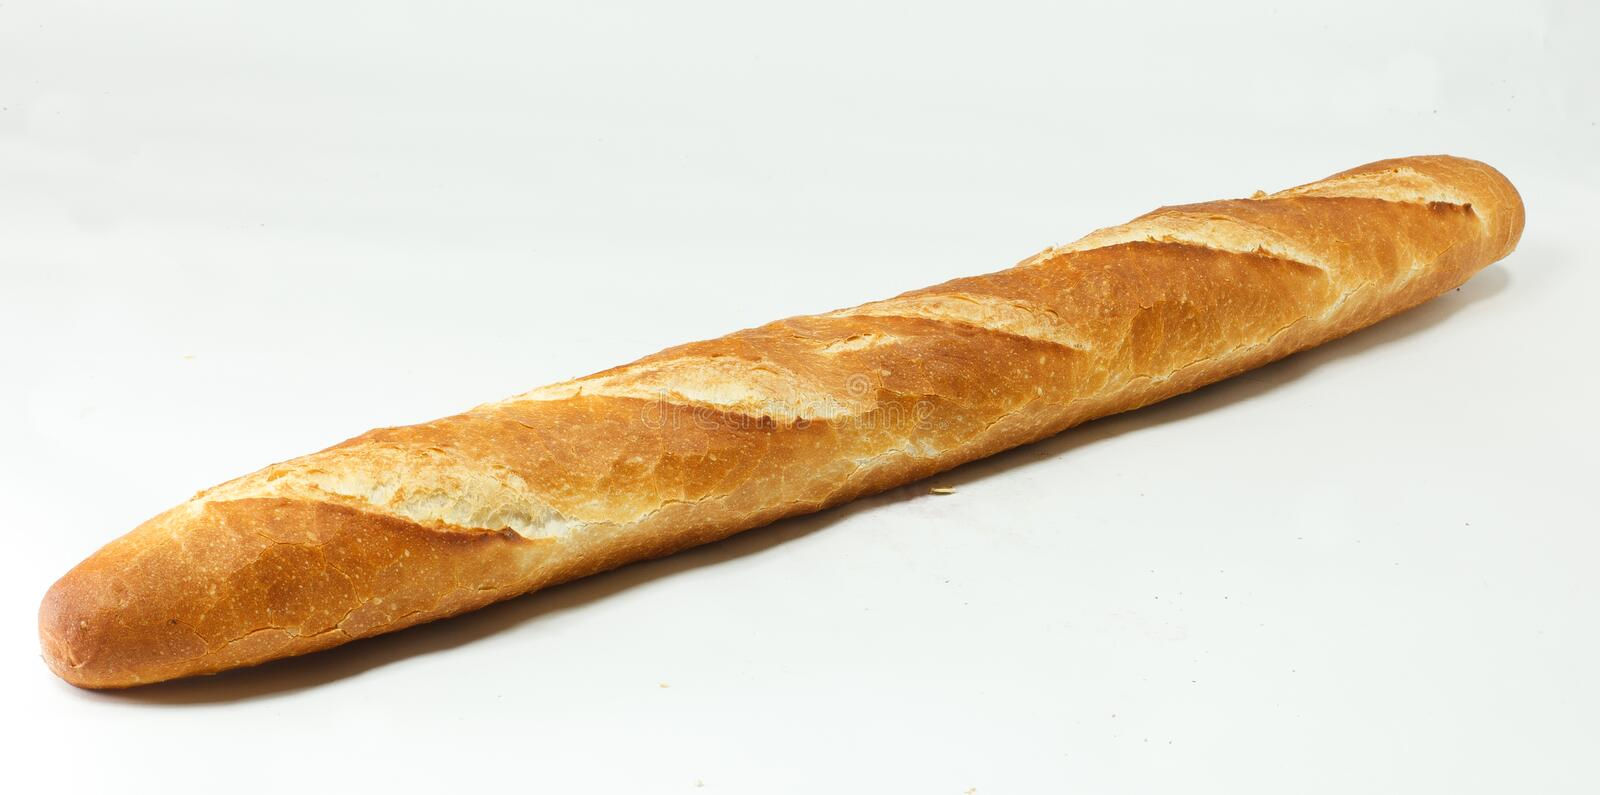 Pain de baguette images stock